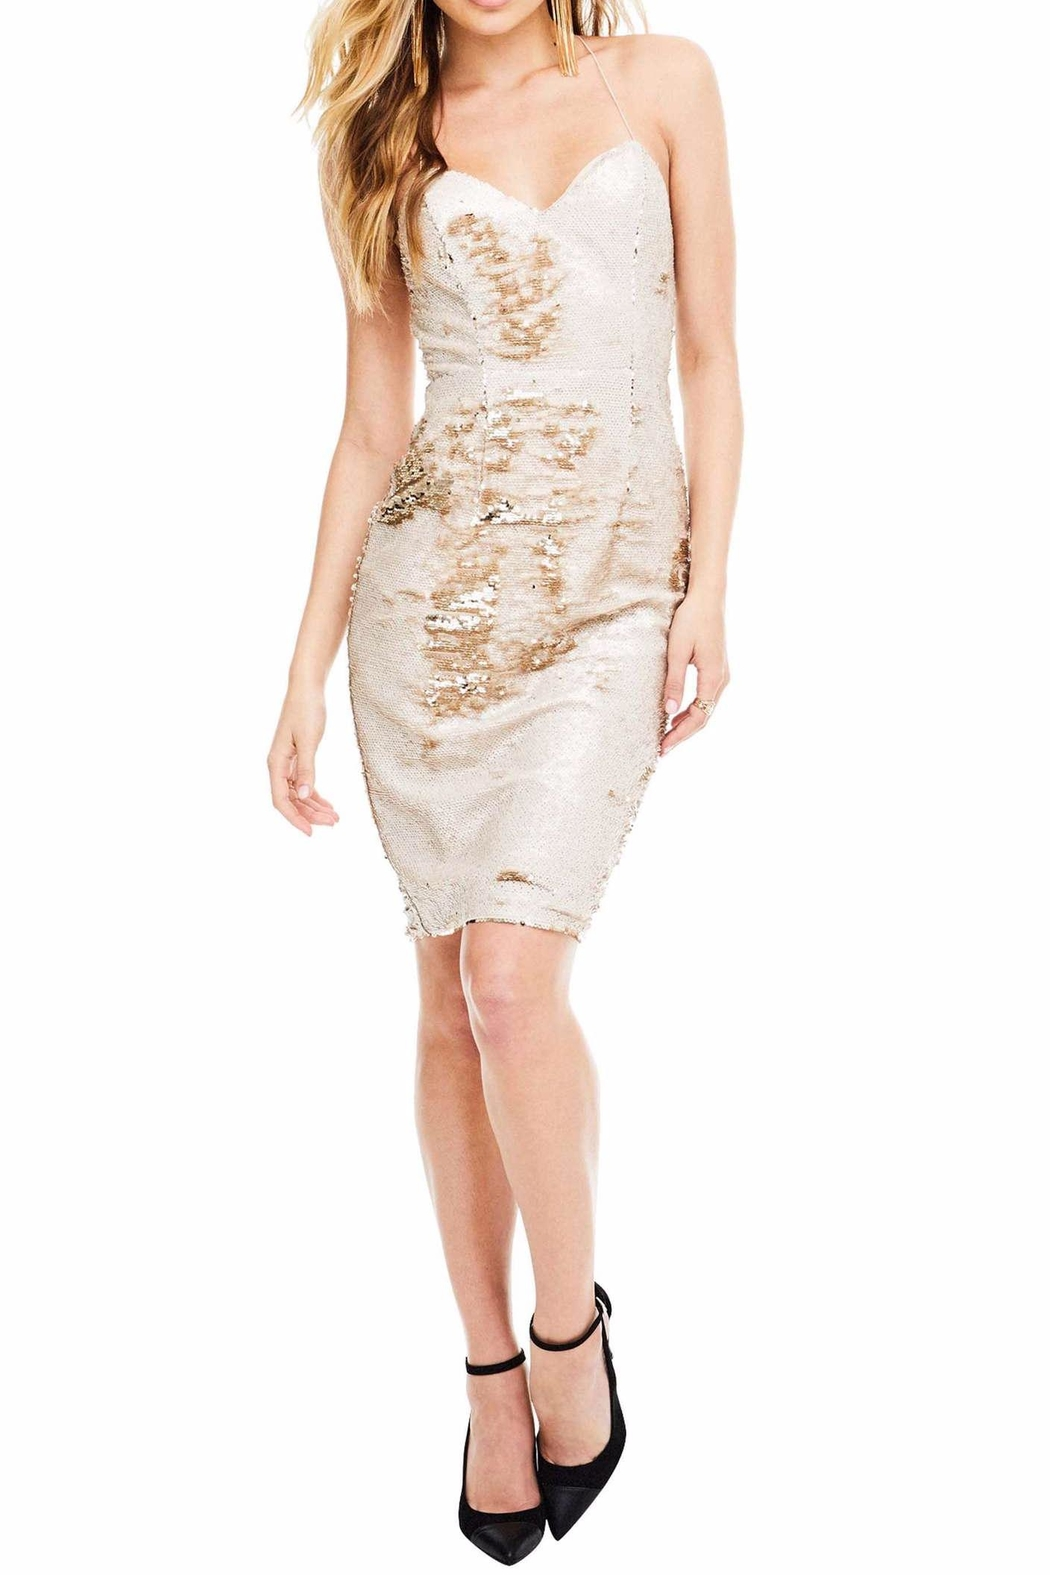 ASTR Francesca Sequin Dress - Main Image